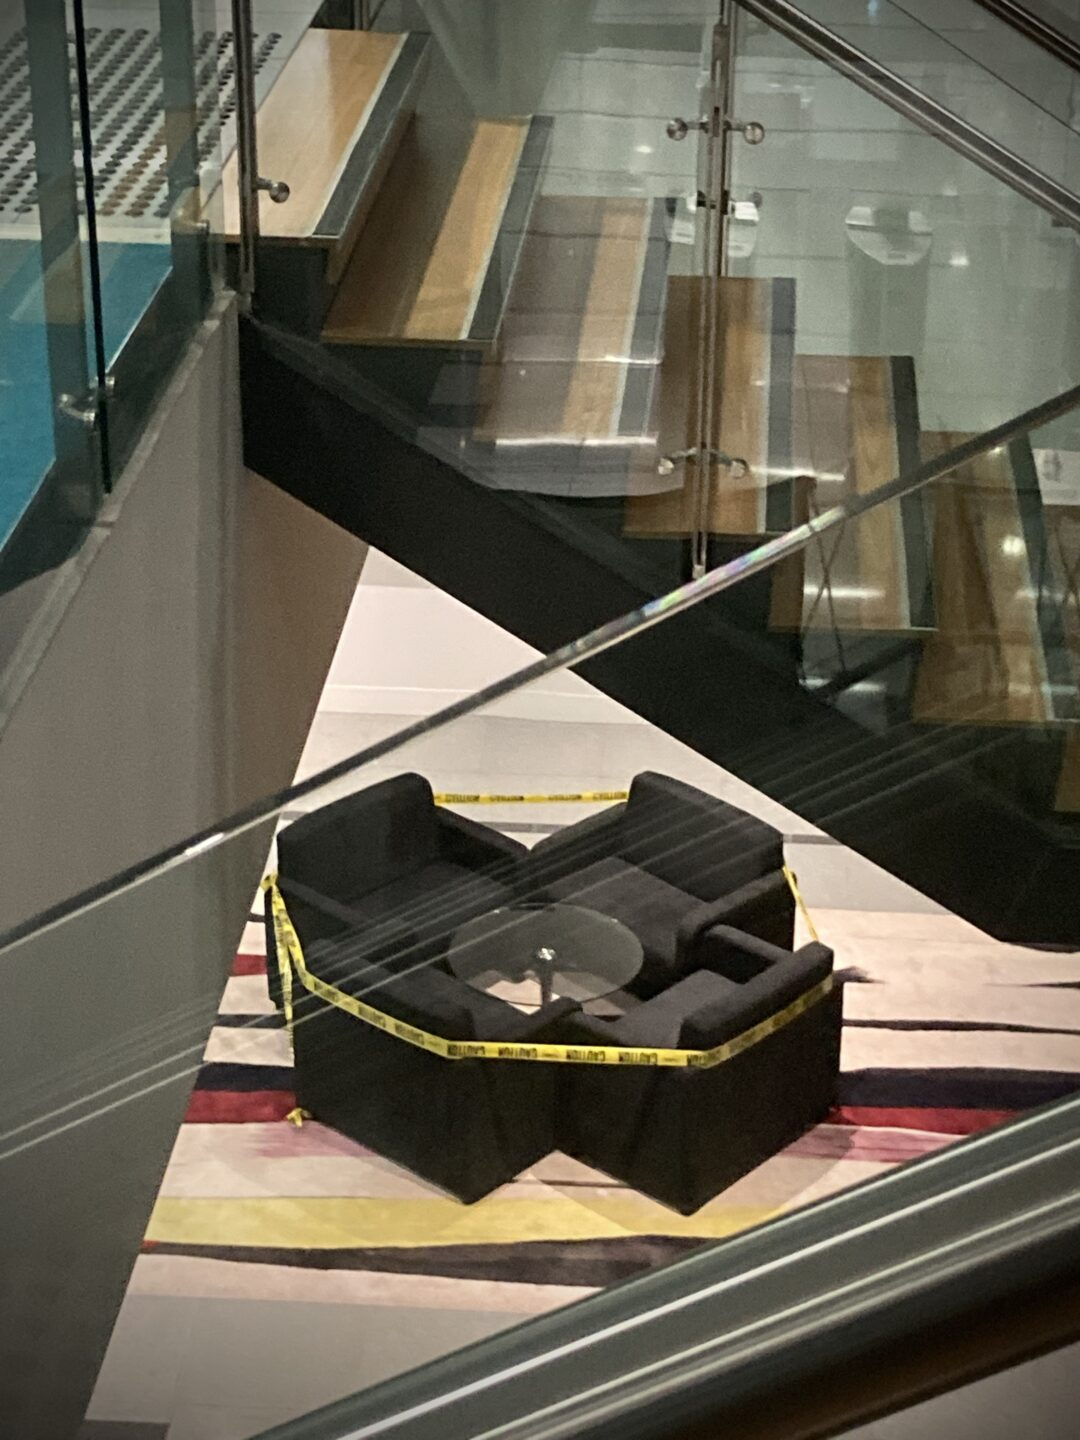 A photo of four seats in a public building wrapped with yellow caution tape.